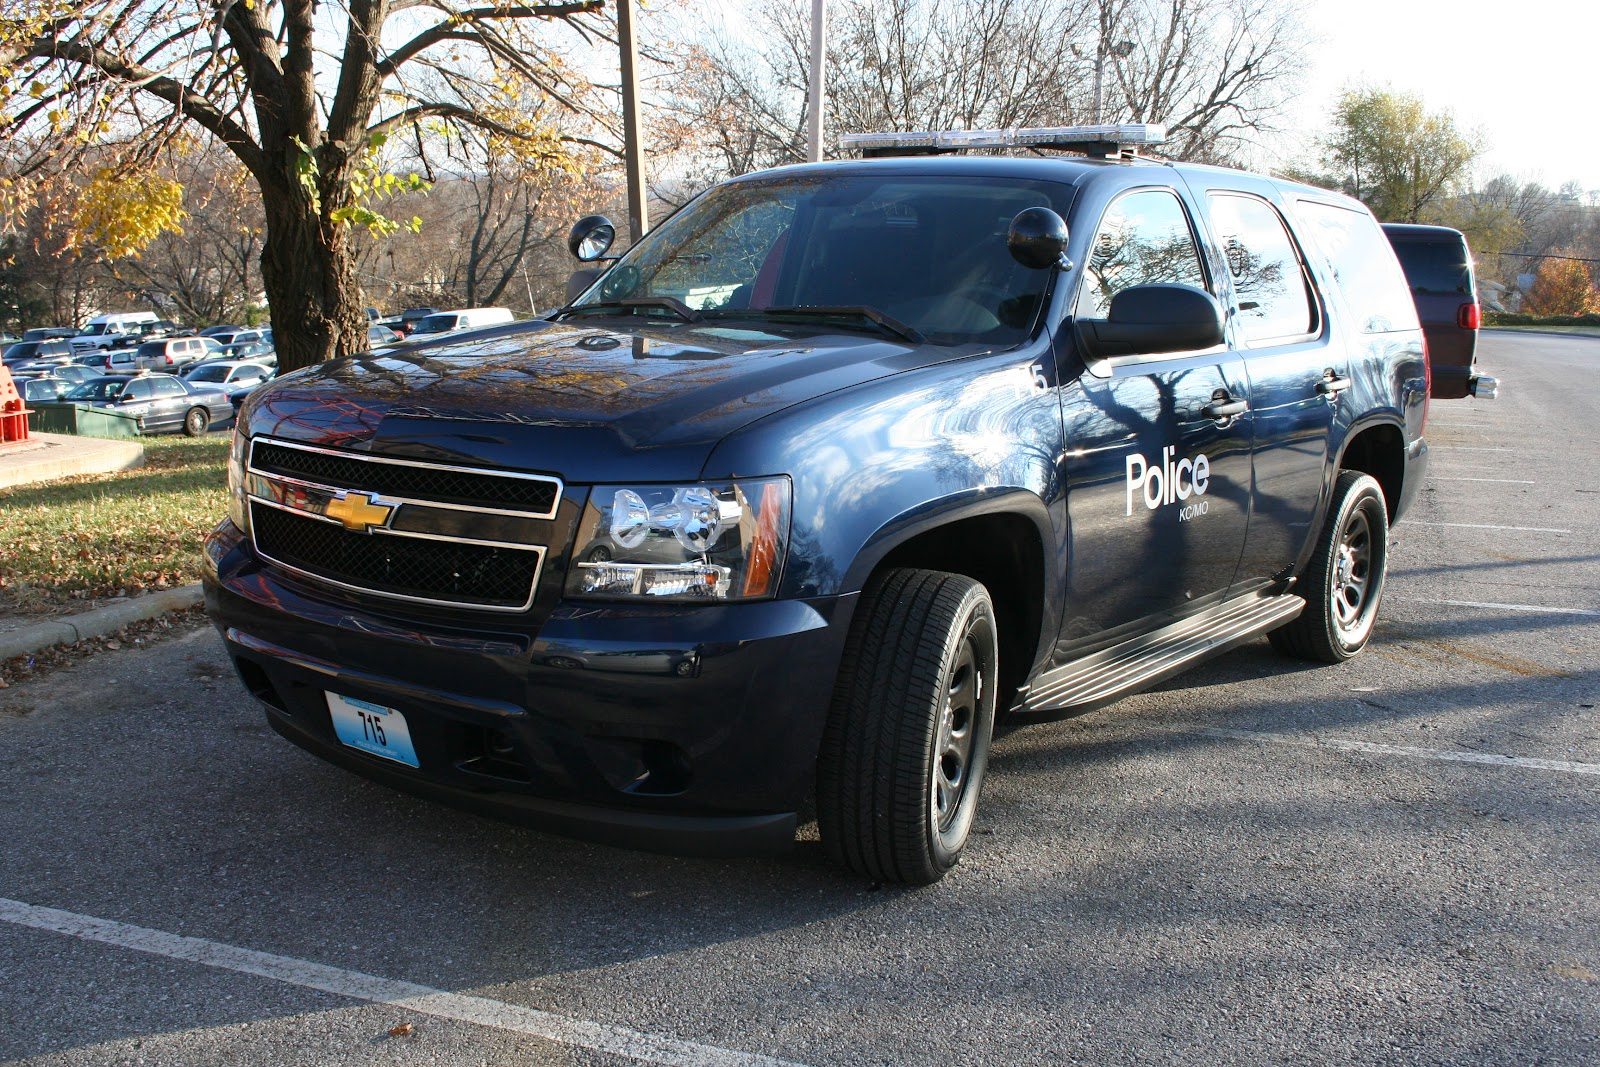 Police Cars For Sale In Kansas City Mo